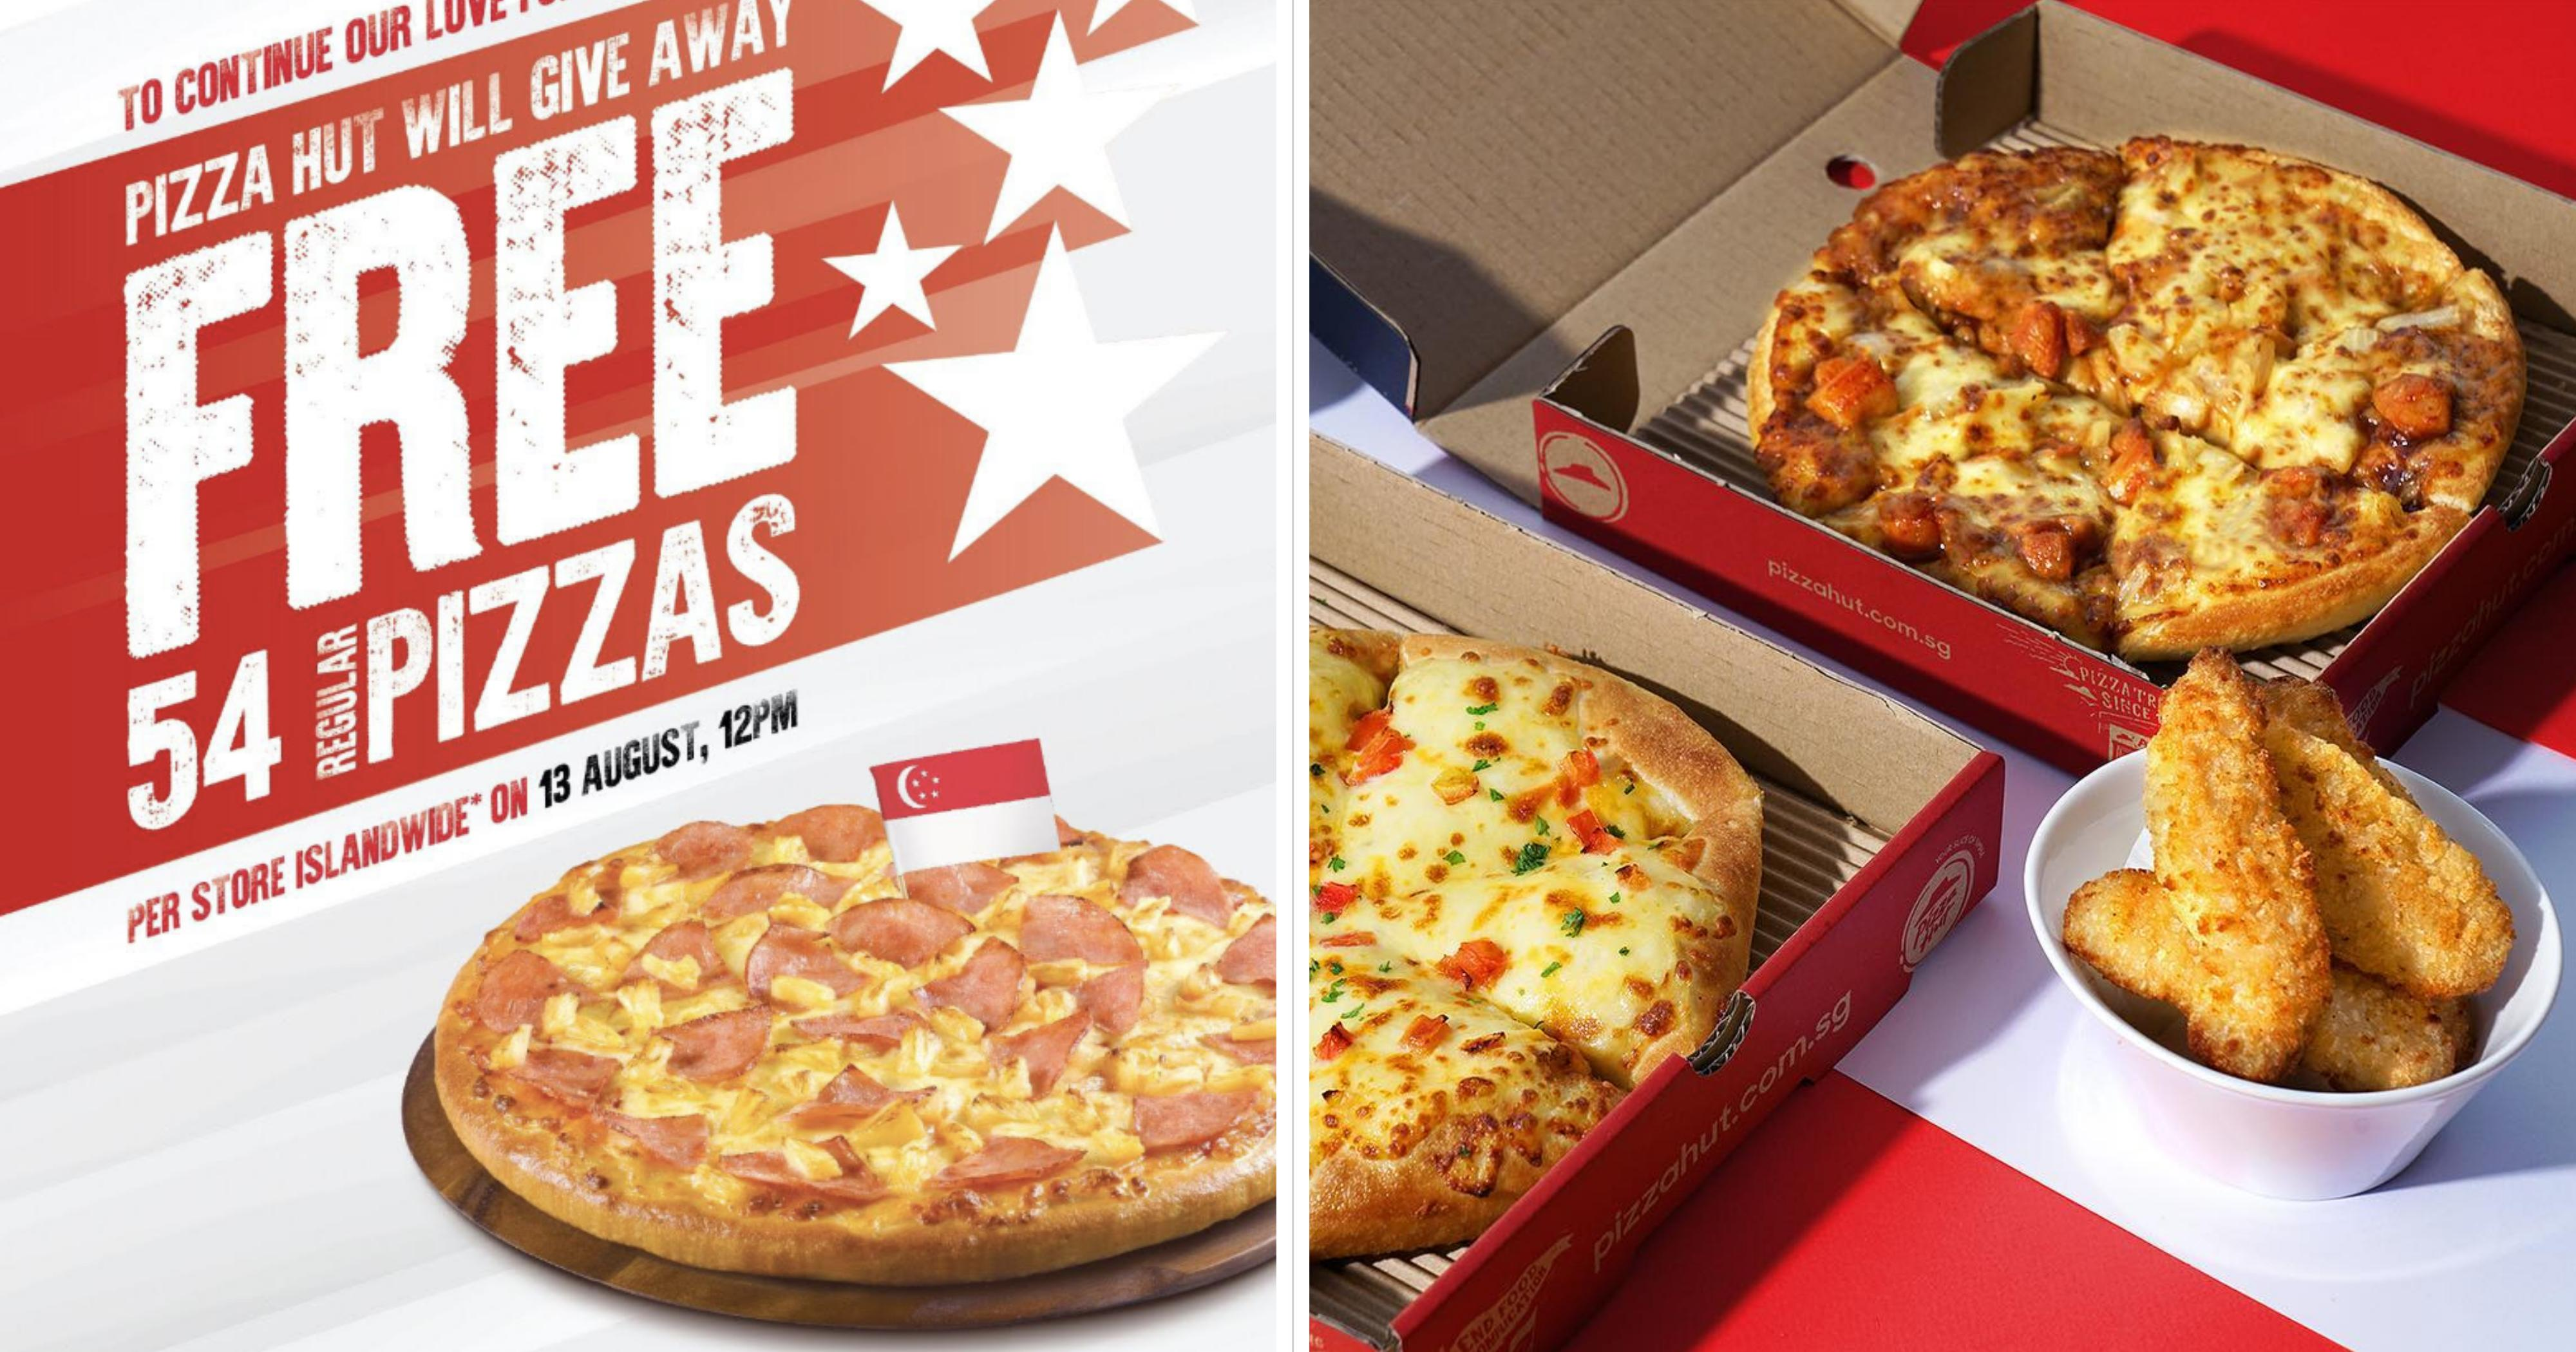 Pizza Hut S Pore Giving Away 54 Free Hawaiian Pan Pizzas Per Outlet On Aug 13 2019 Mothership Sg News From Singapore Asia And Around The World